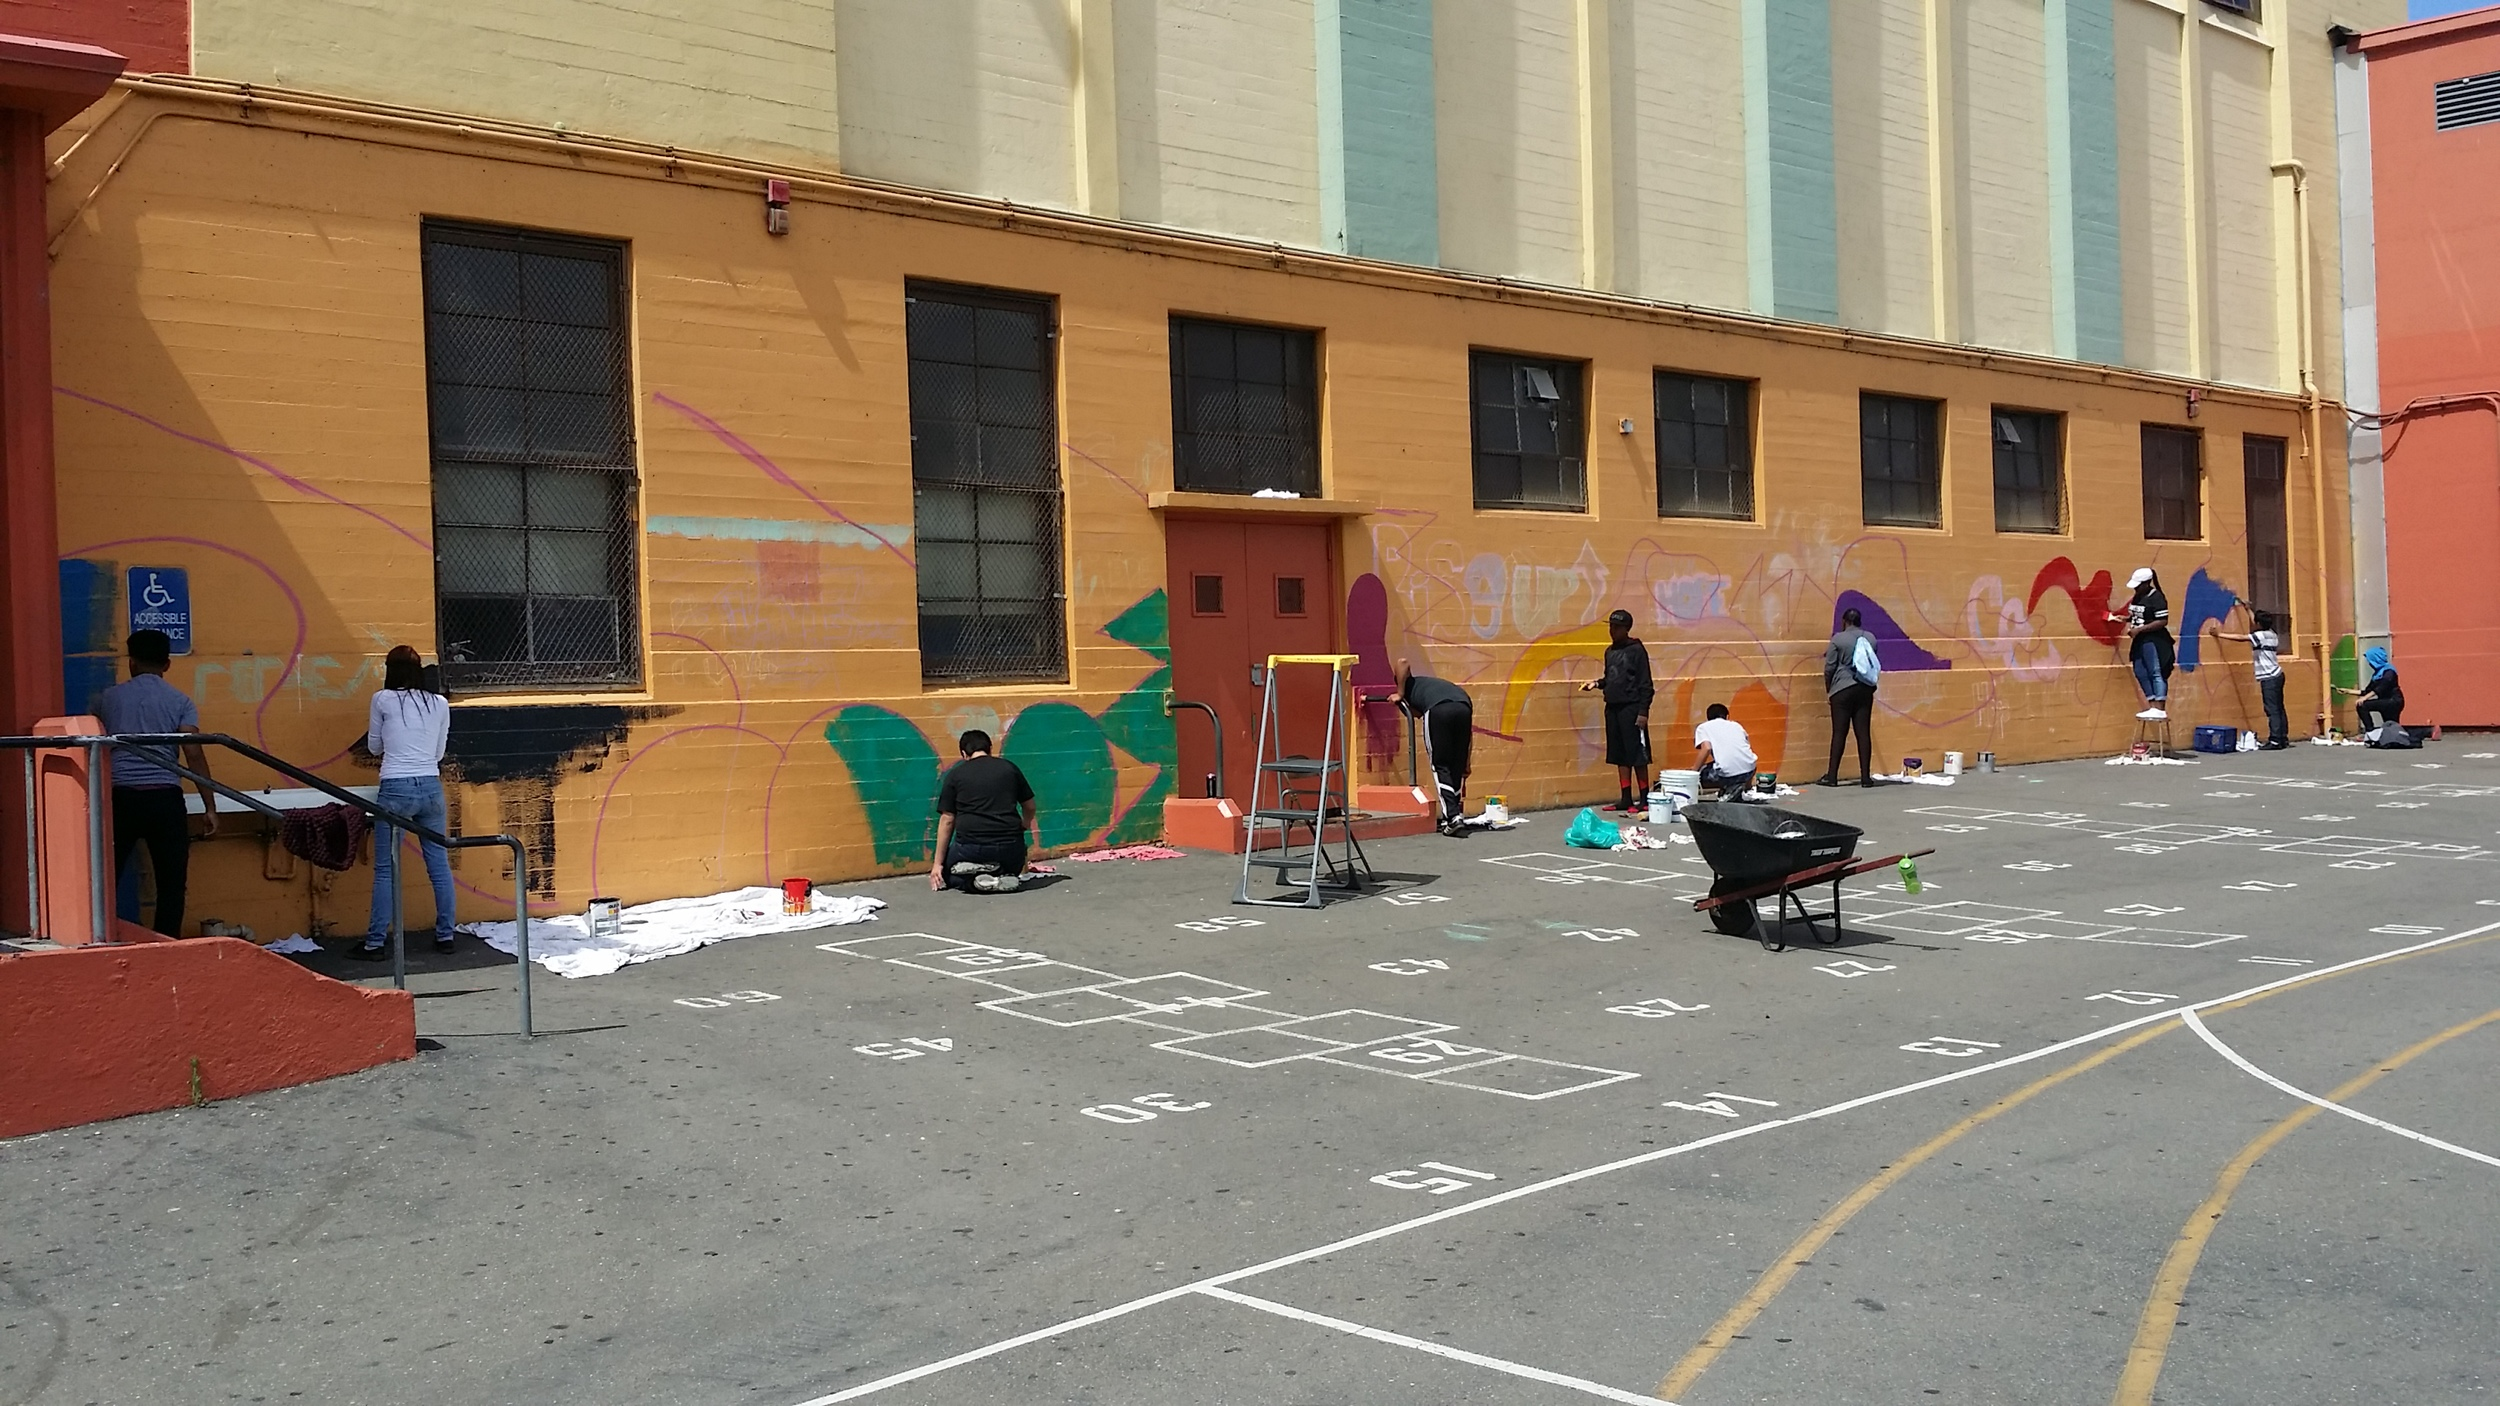 Students began painting the wall under my guidance.